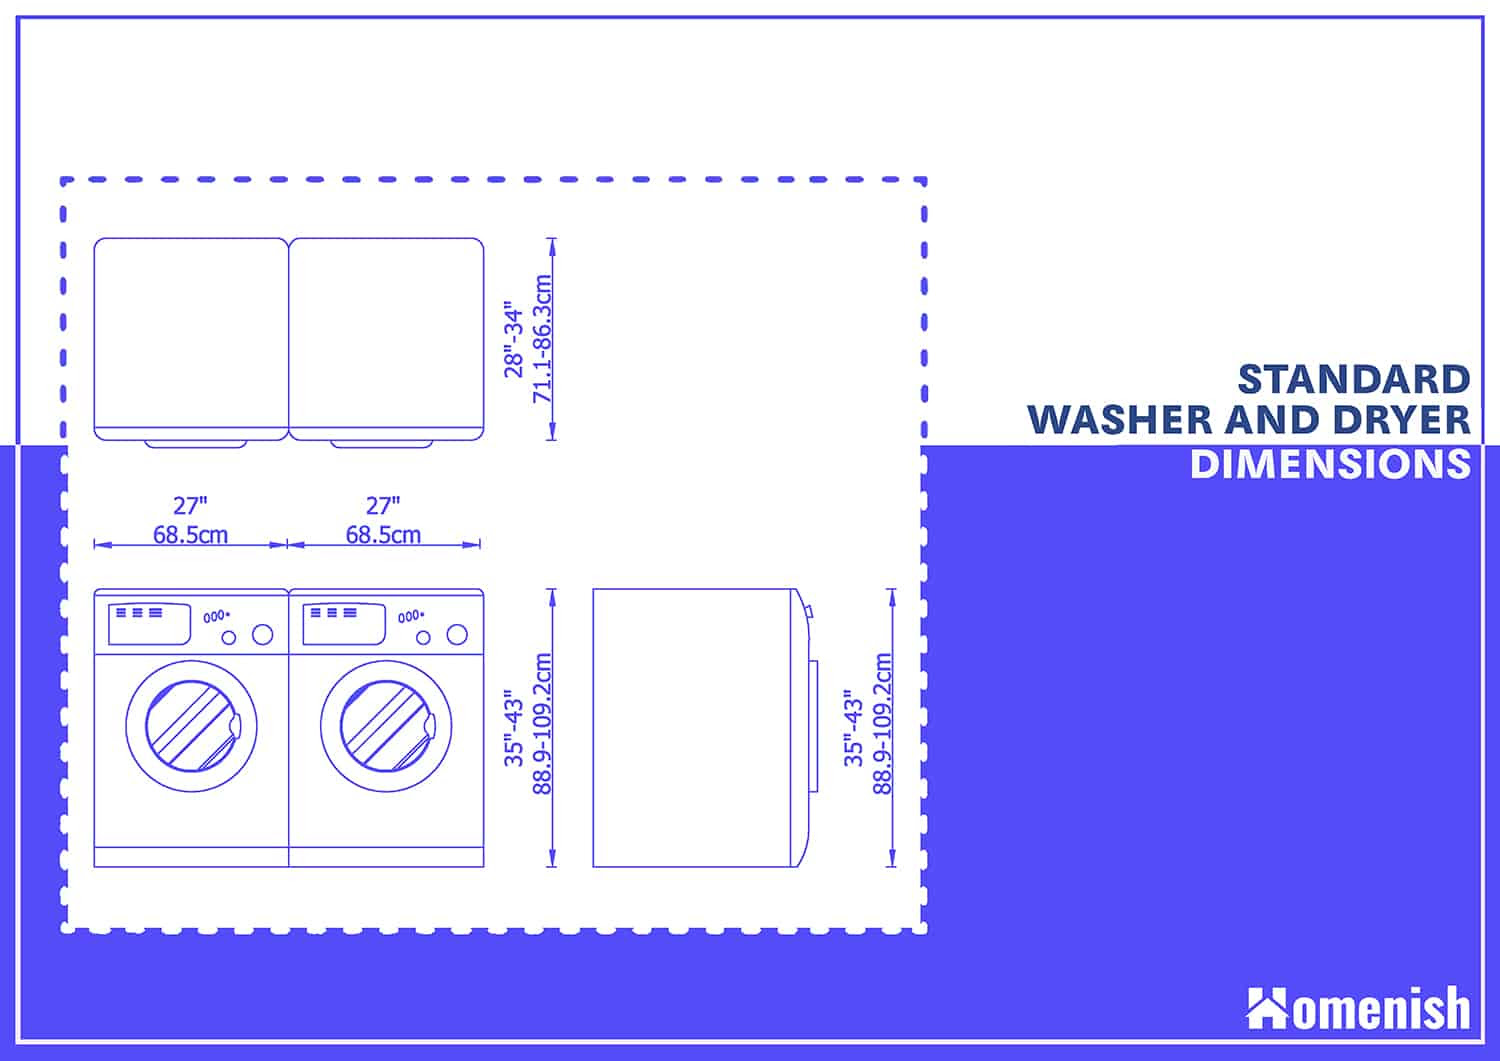 Washer And Dryer Dimensions Explained 3 Diagrams Included Homenish